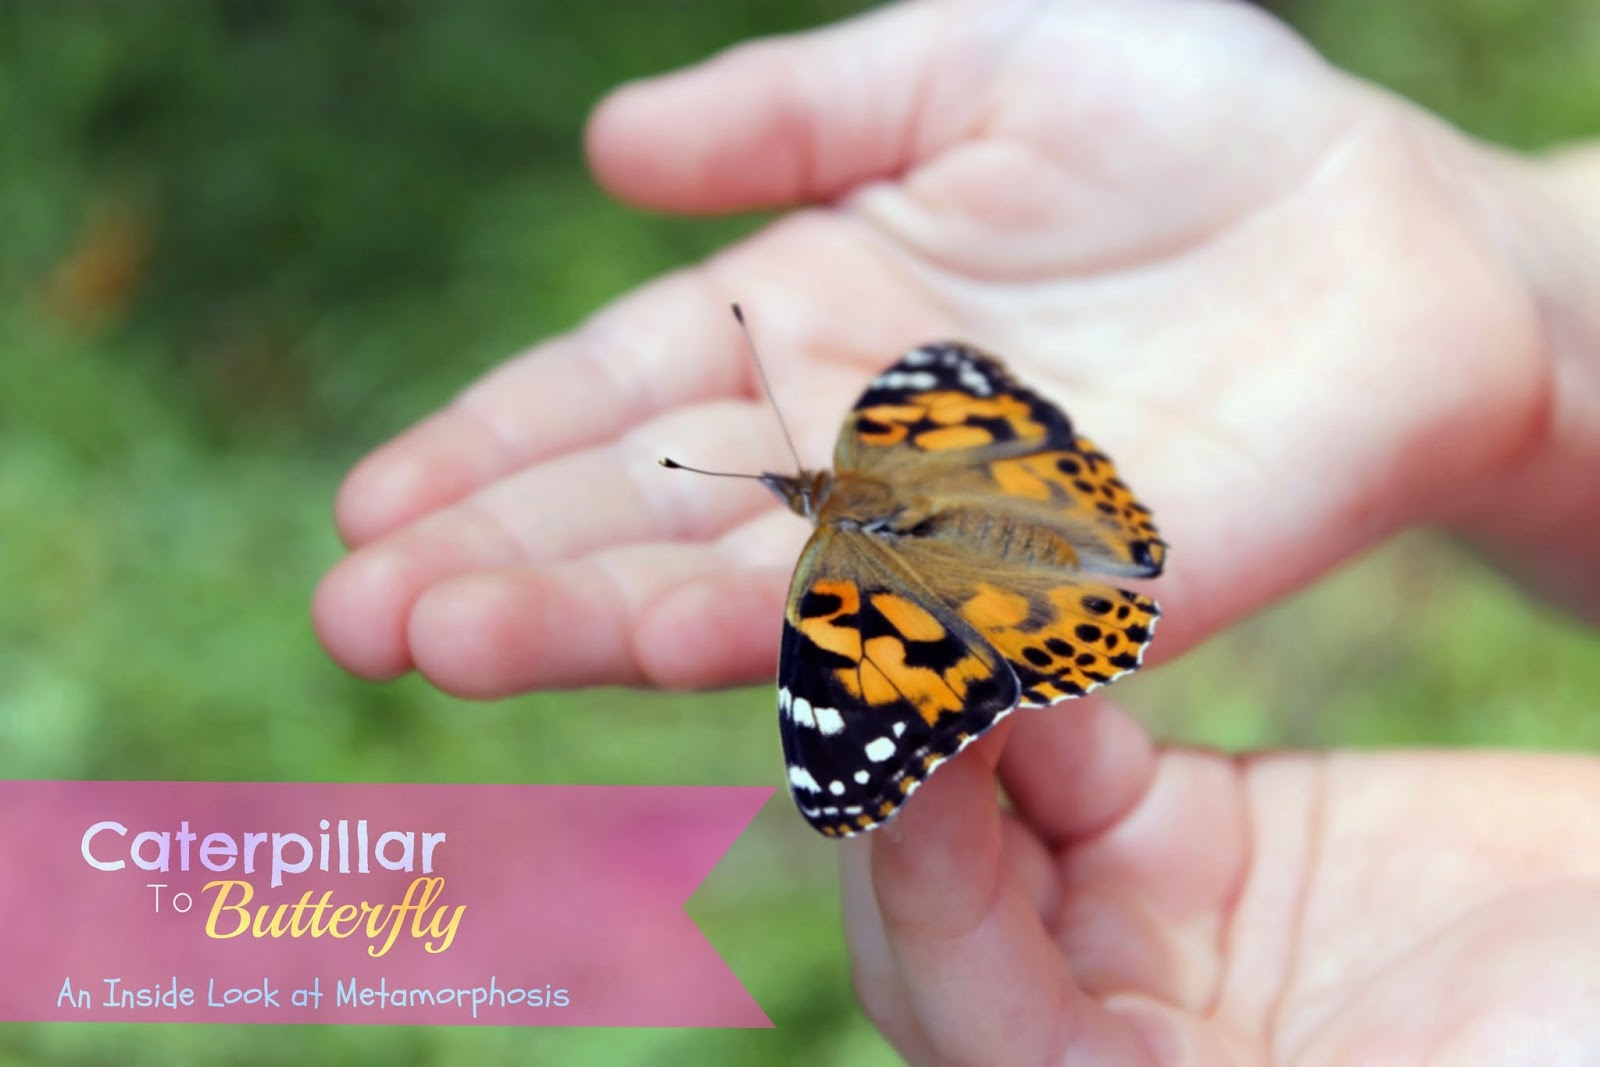 from a caterpillar to a butterfly